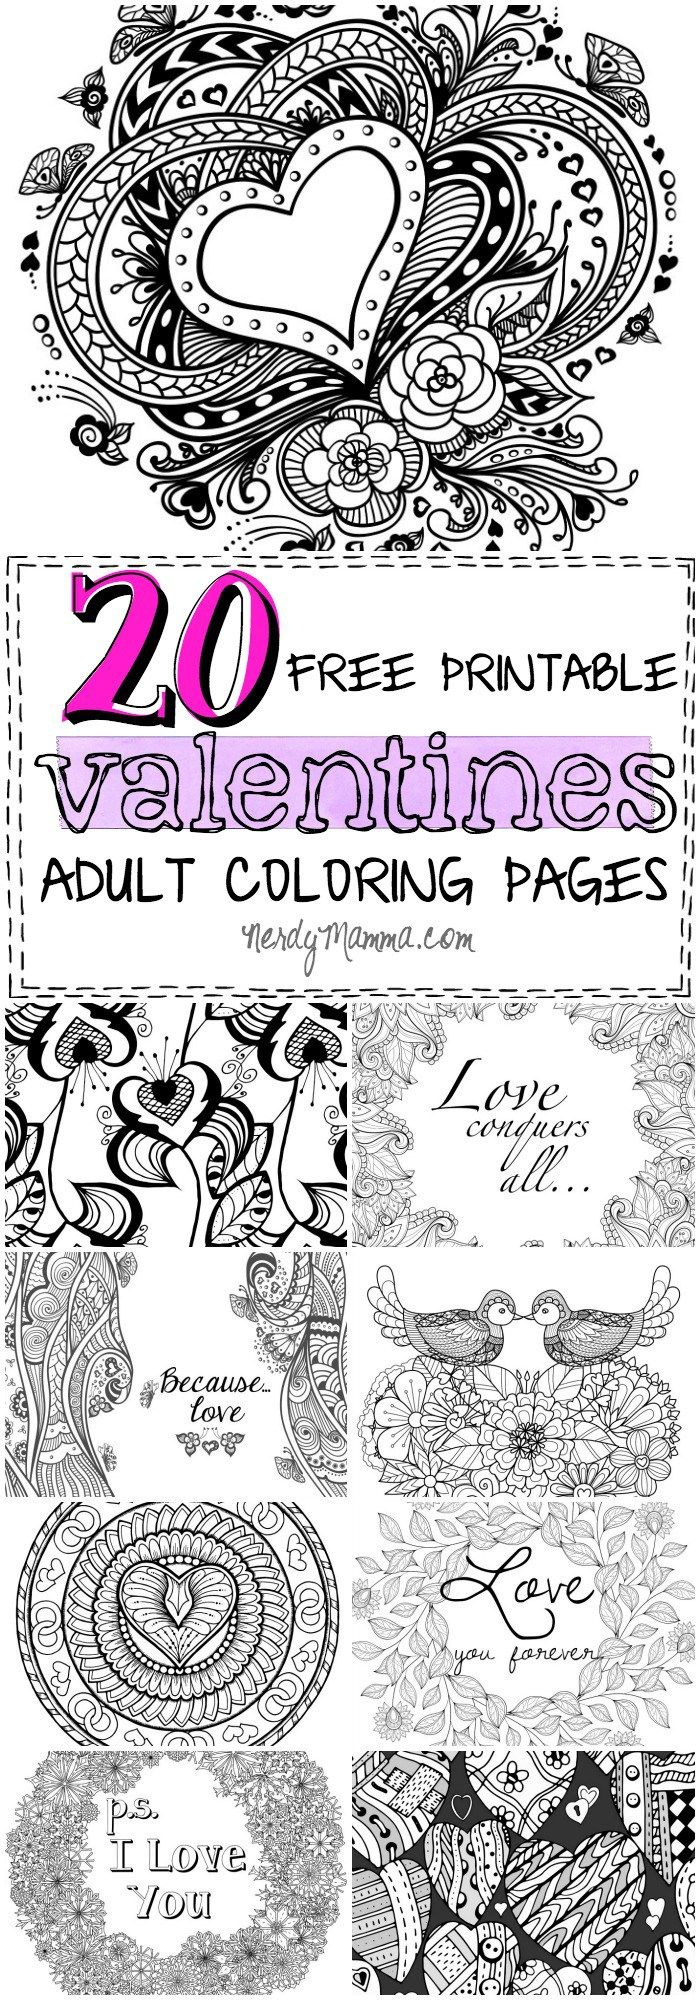 20 Free Printable Valentines Adult Coloring Pages | The ...